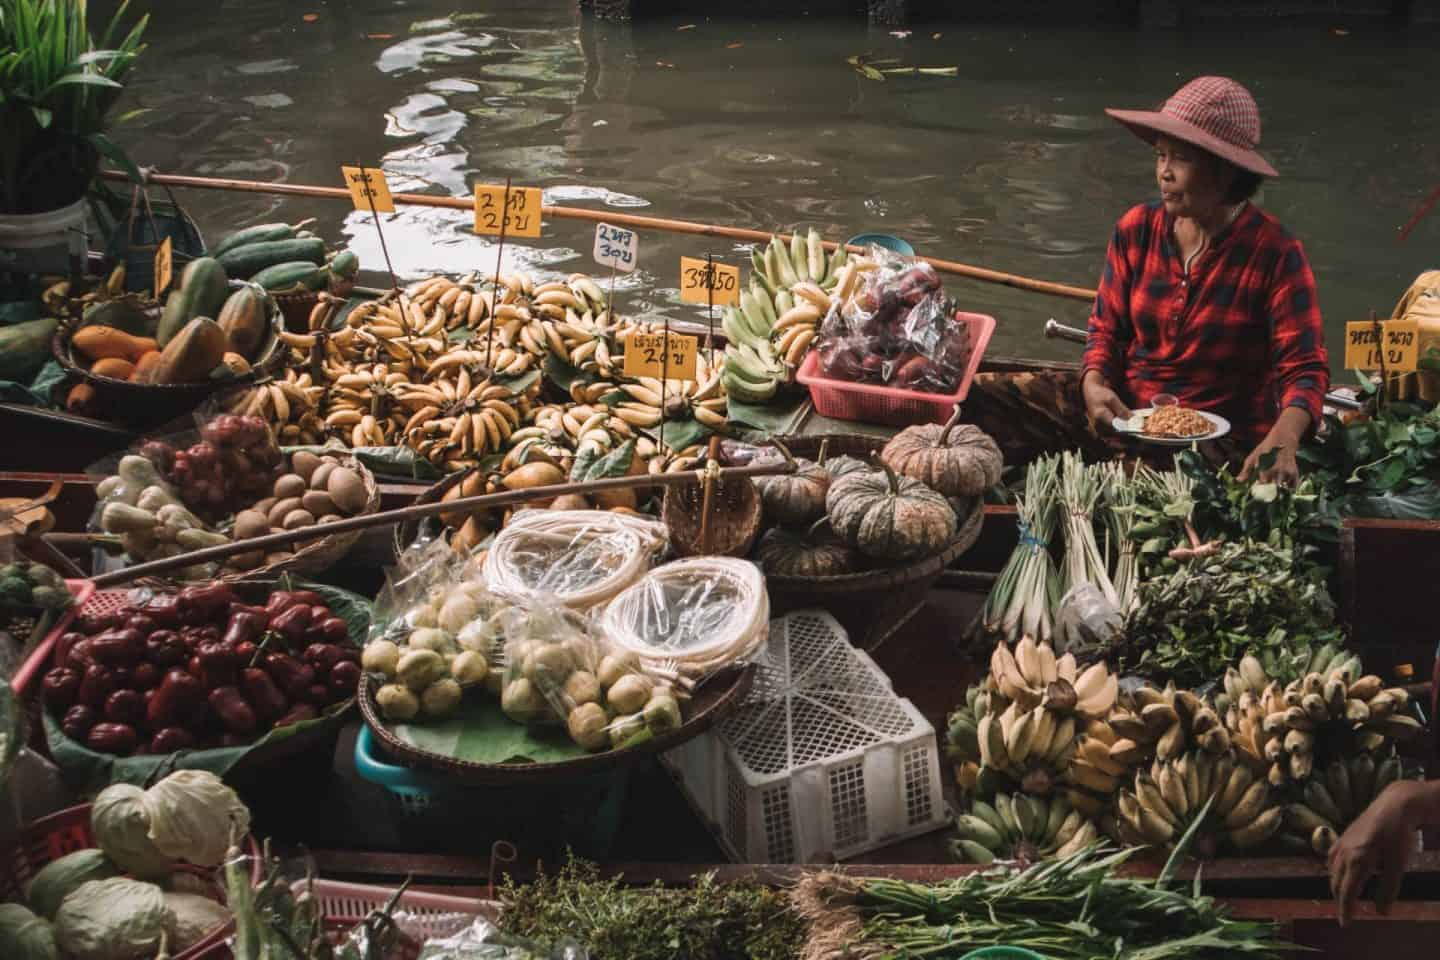 woman with food in boat